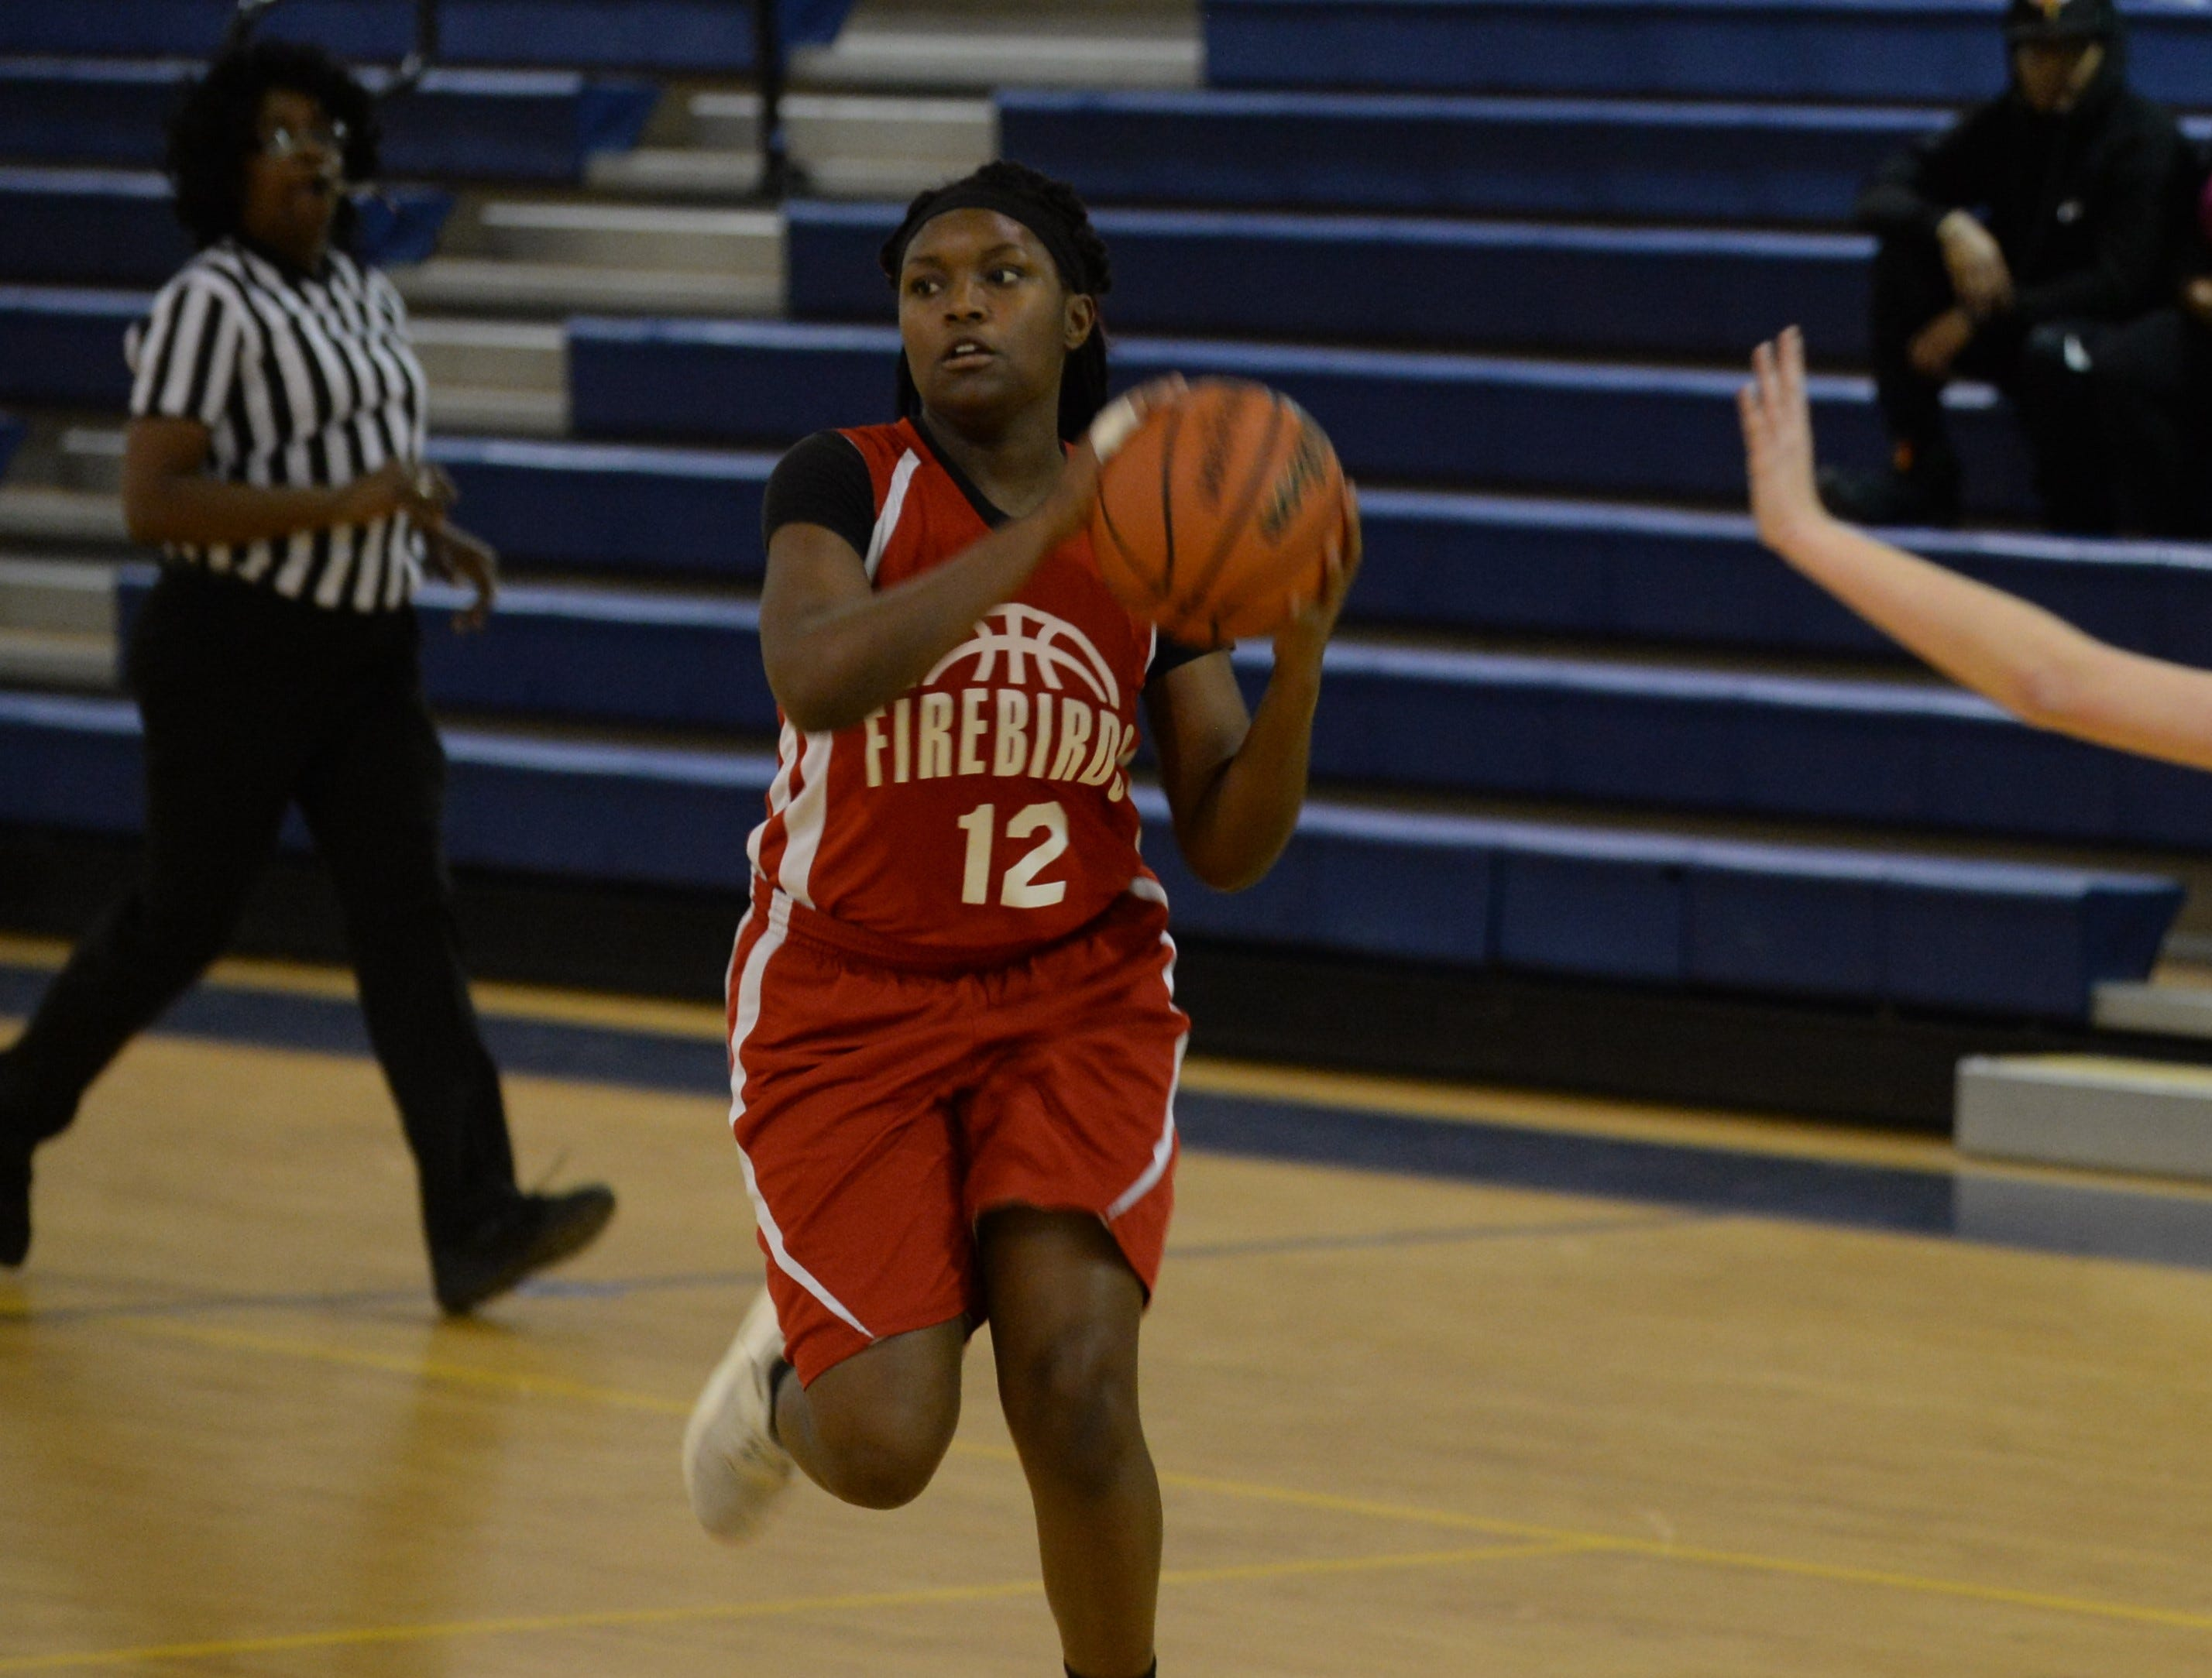 Arcadia's Denija Woolford looks to pass against Chincoteague on Thursday, Jan. 17, 2019.